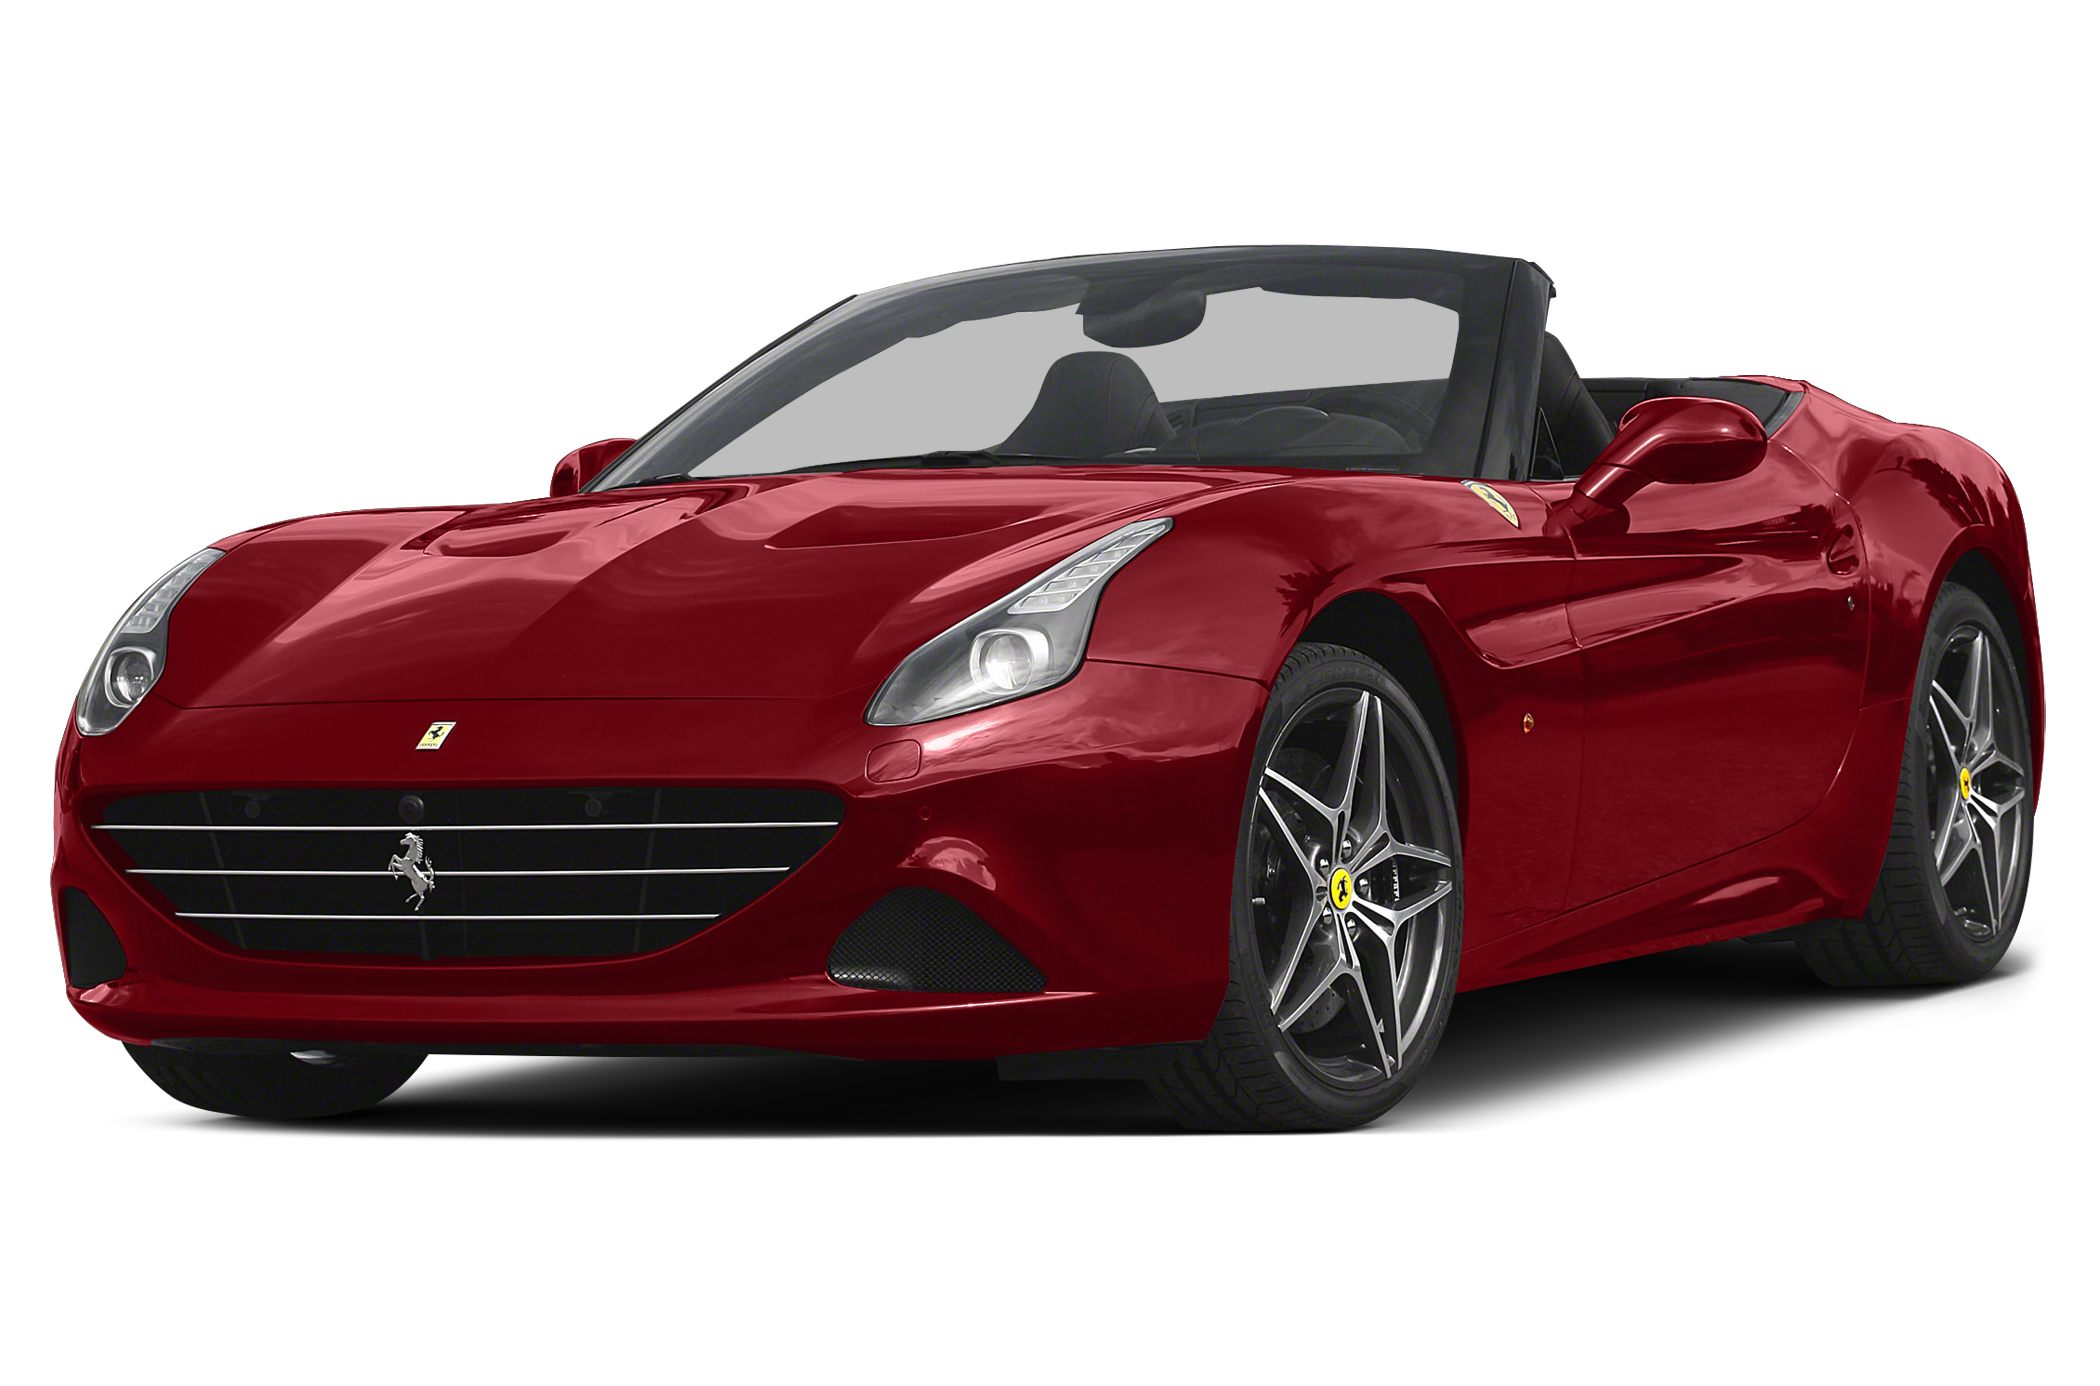 2016 Ferrari California Pricing And Specs